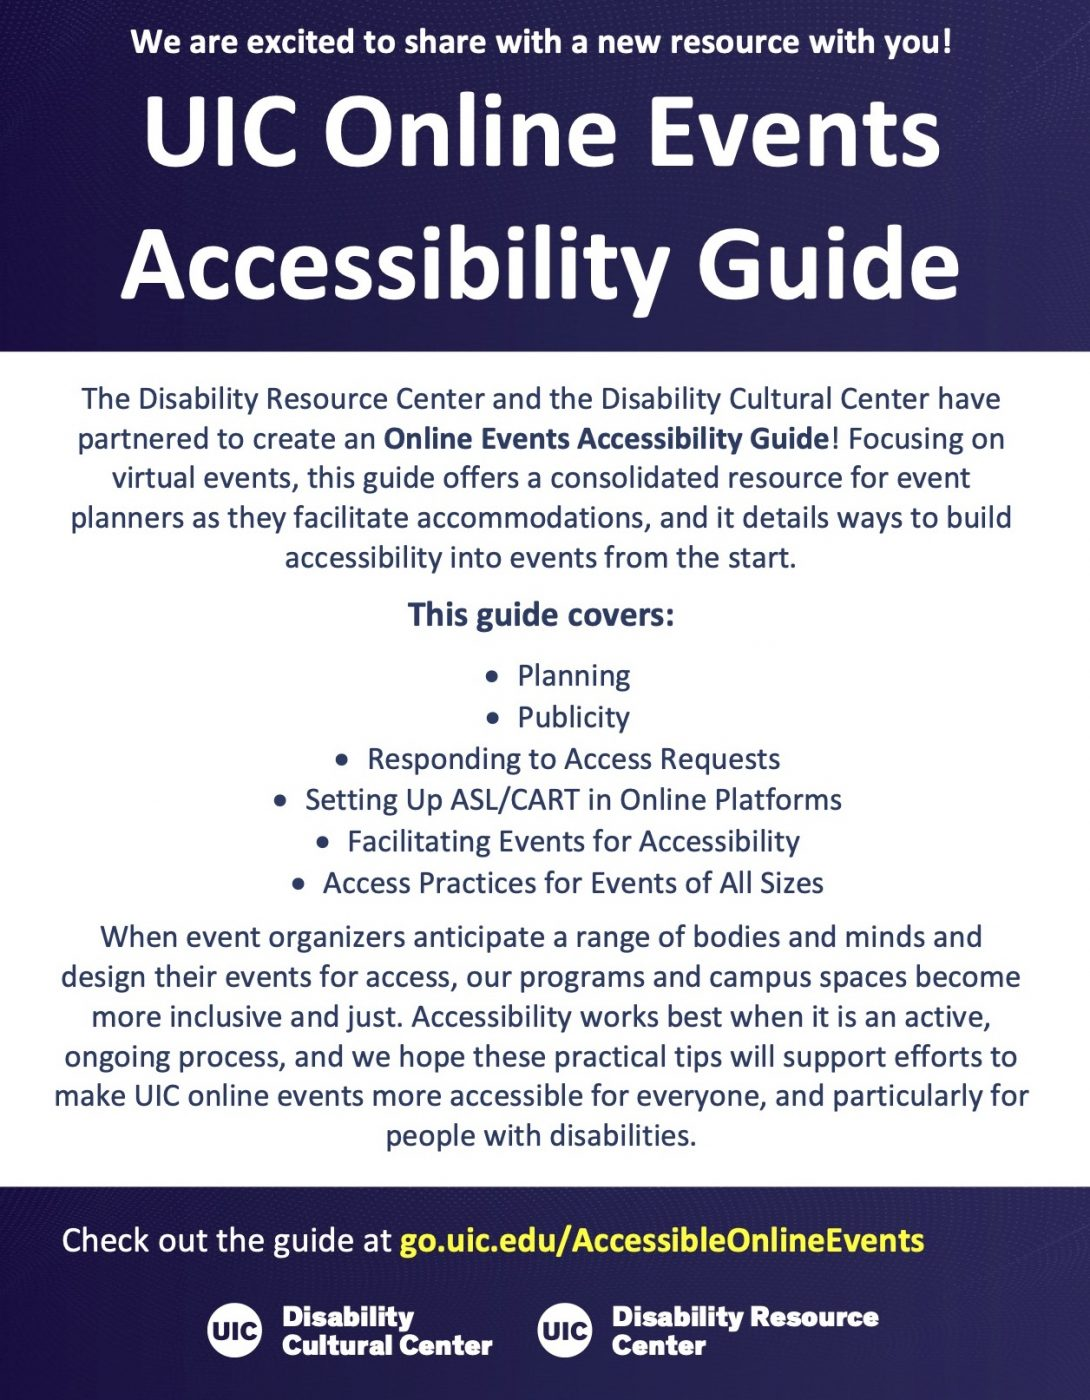 UIC Accessible Online Events Guide announcement flyer